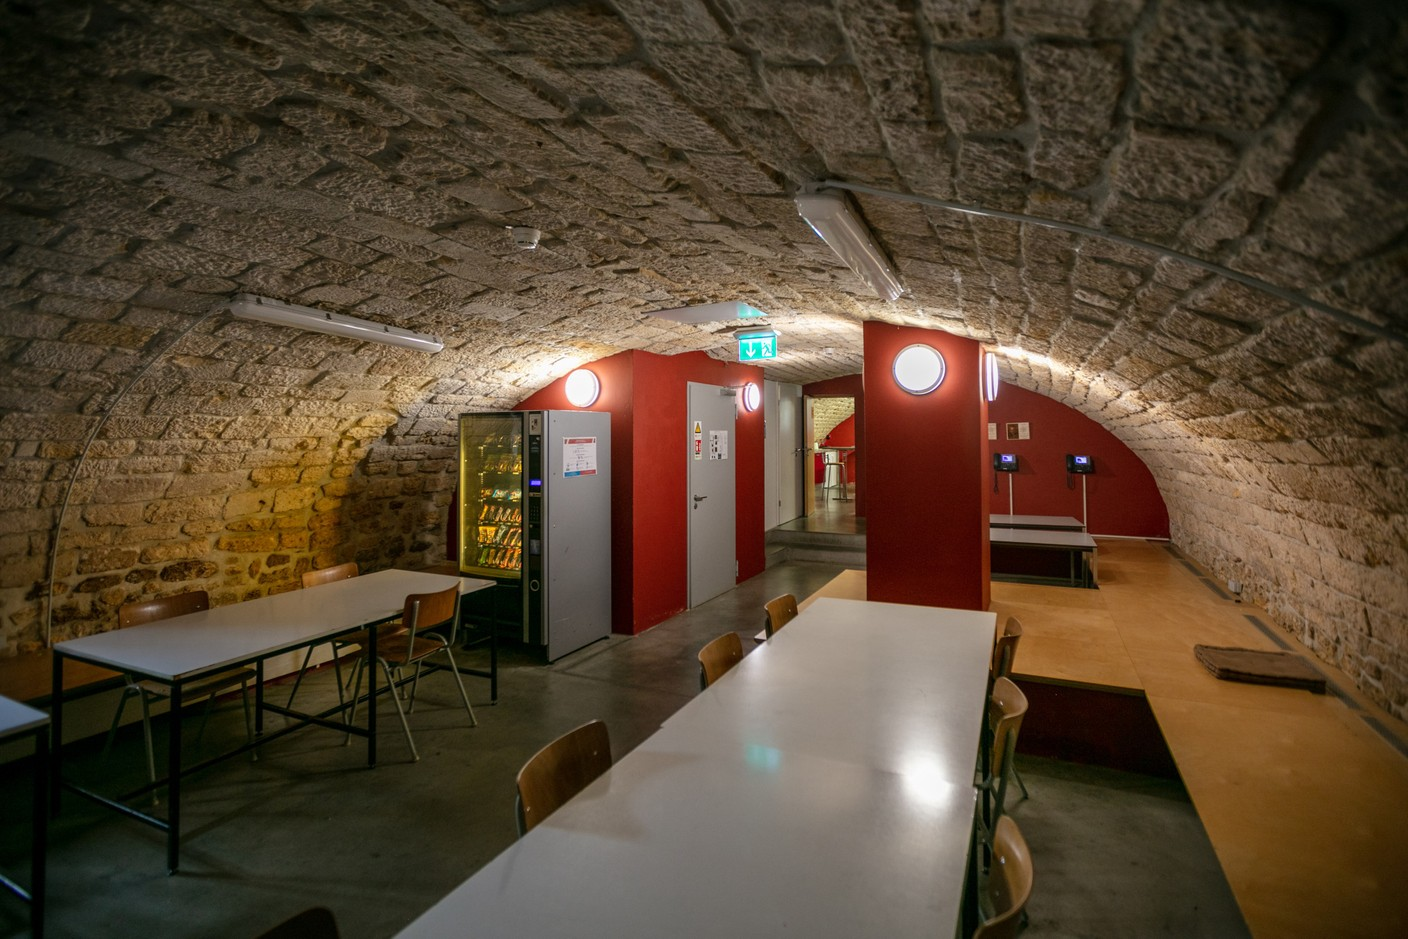 The vaulted cave where wine was once stored now functions as a study space Romain Gamba / Maison Moderne